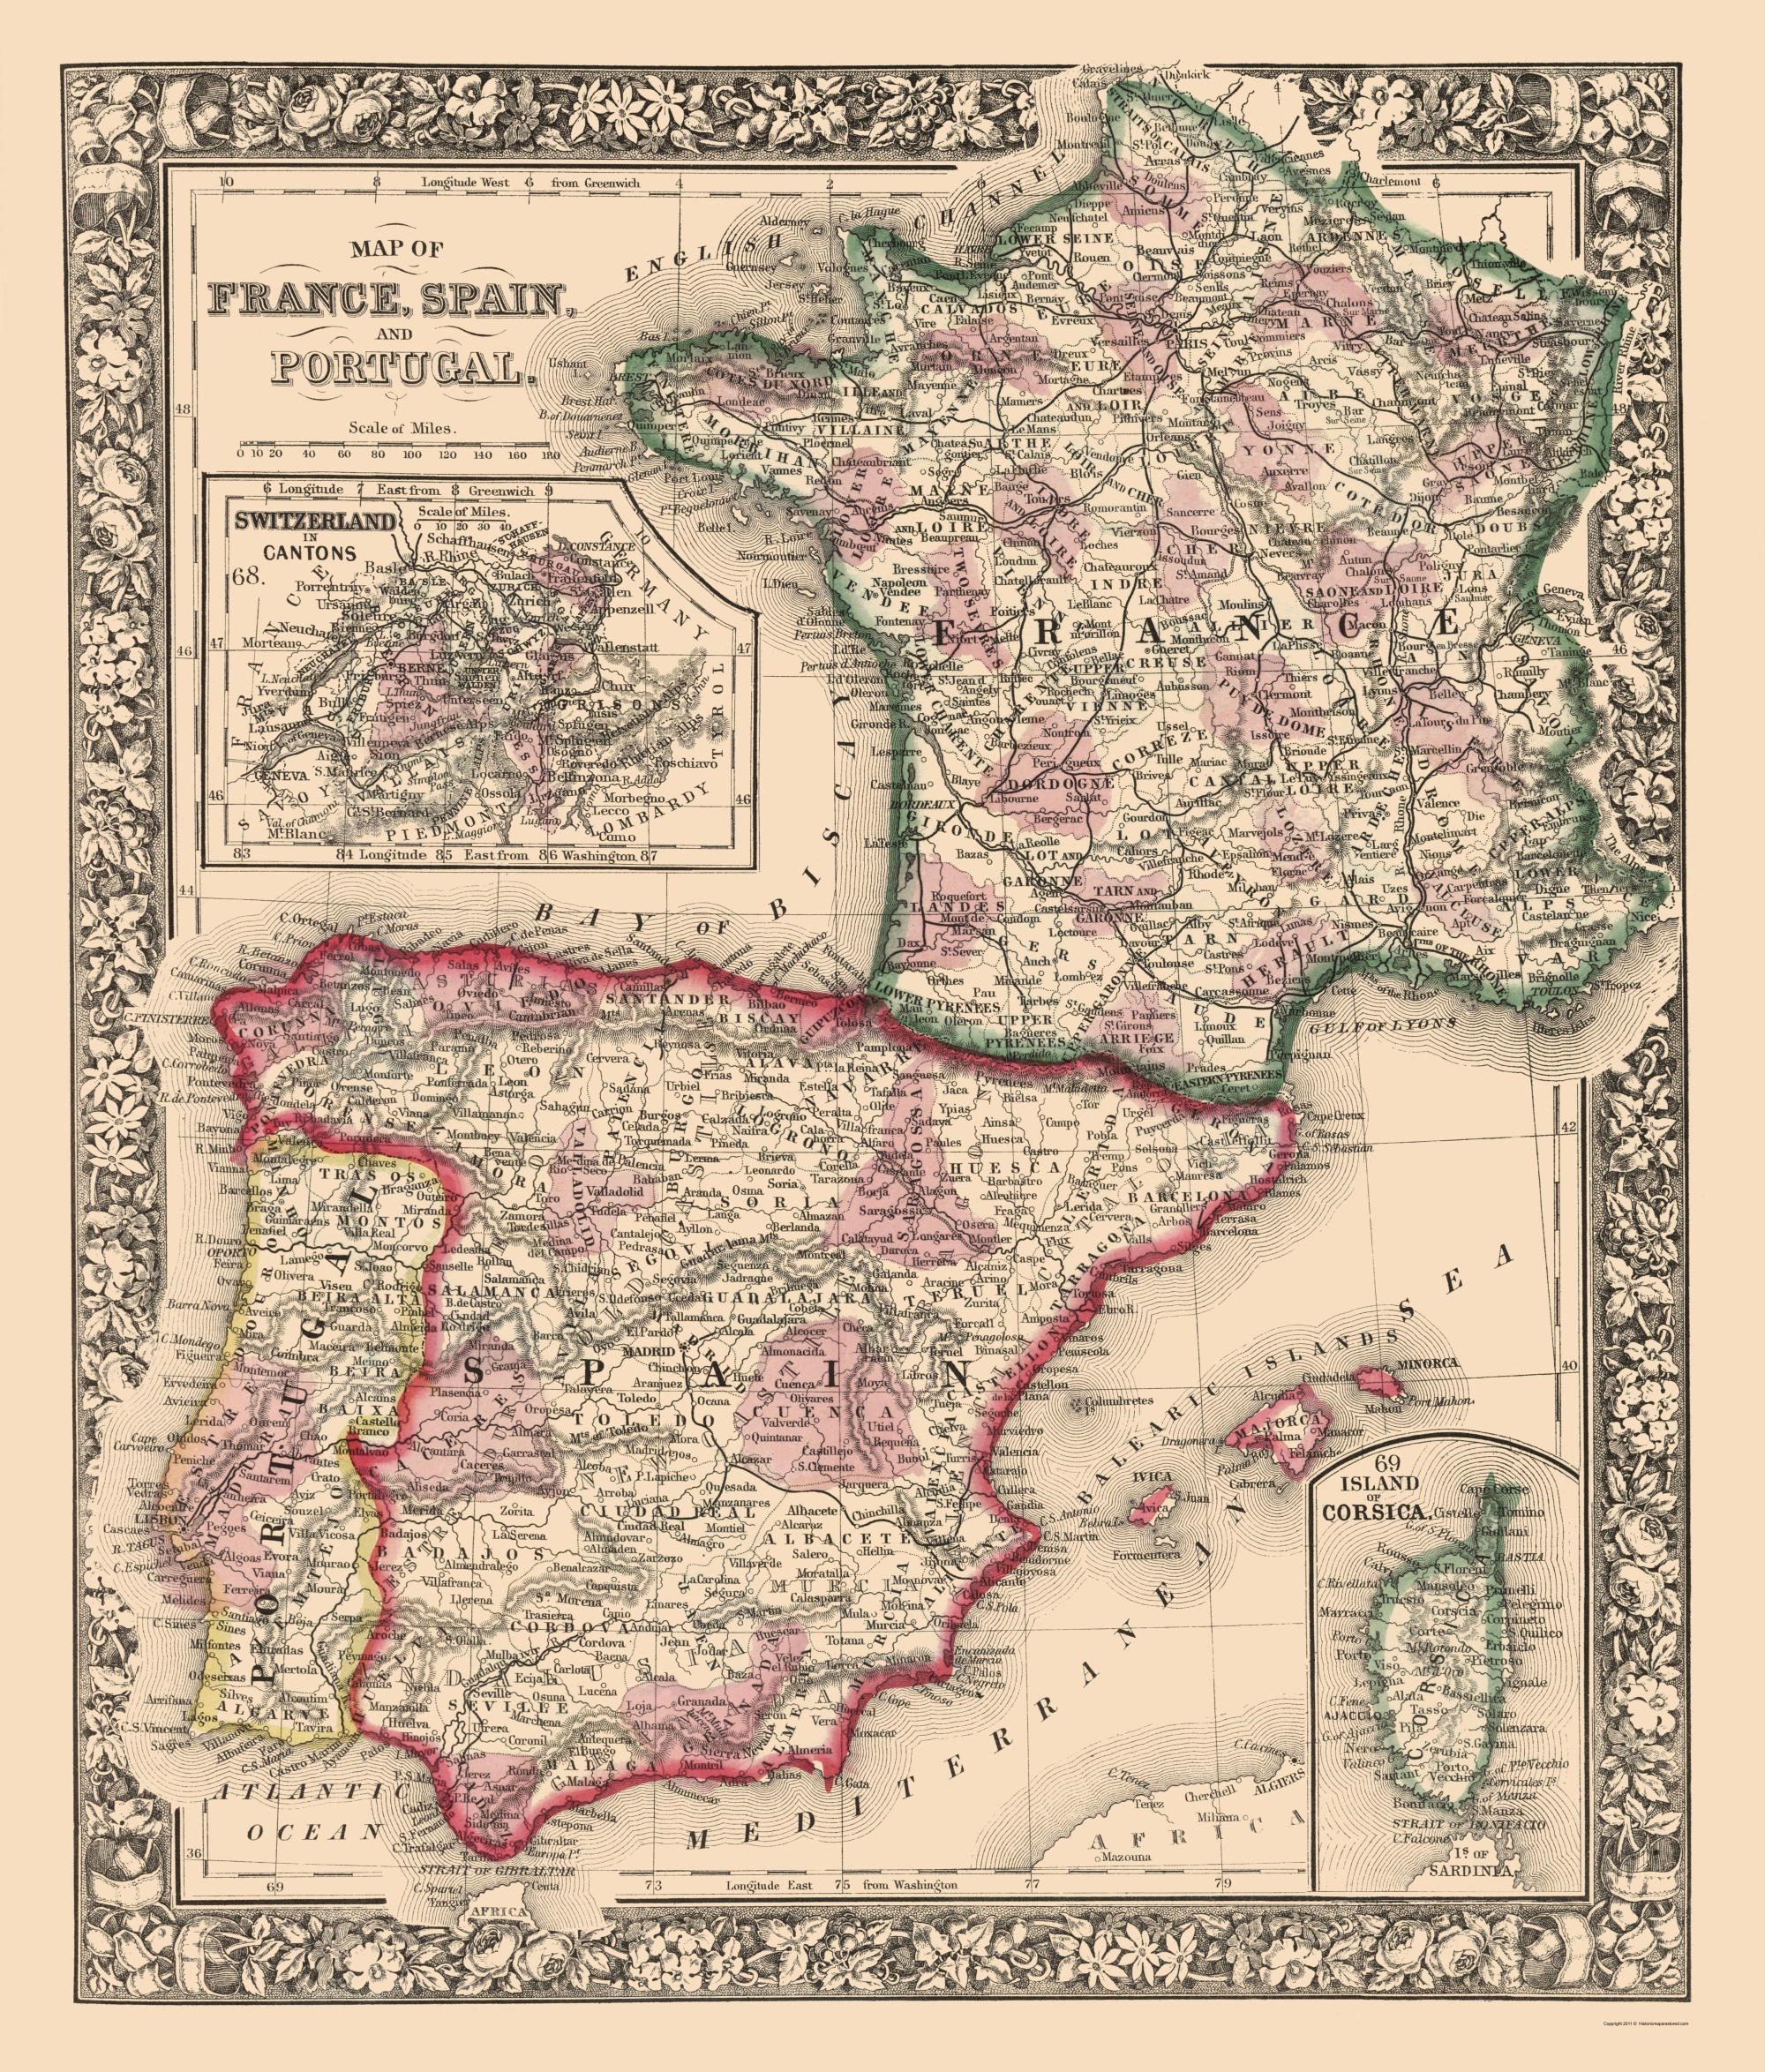 Map Of Spain Portugal And France.Old Europe Map France Spain And Portugal Mitchell 1862 23 X 27 00